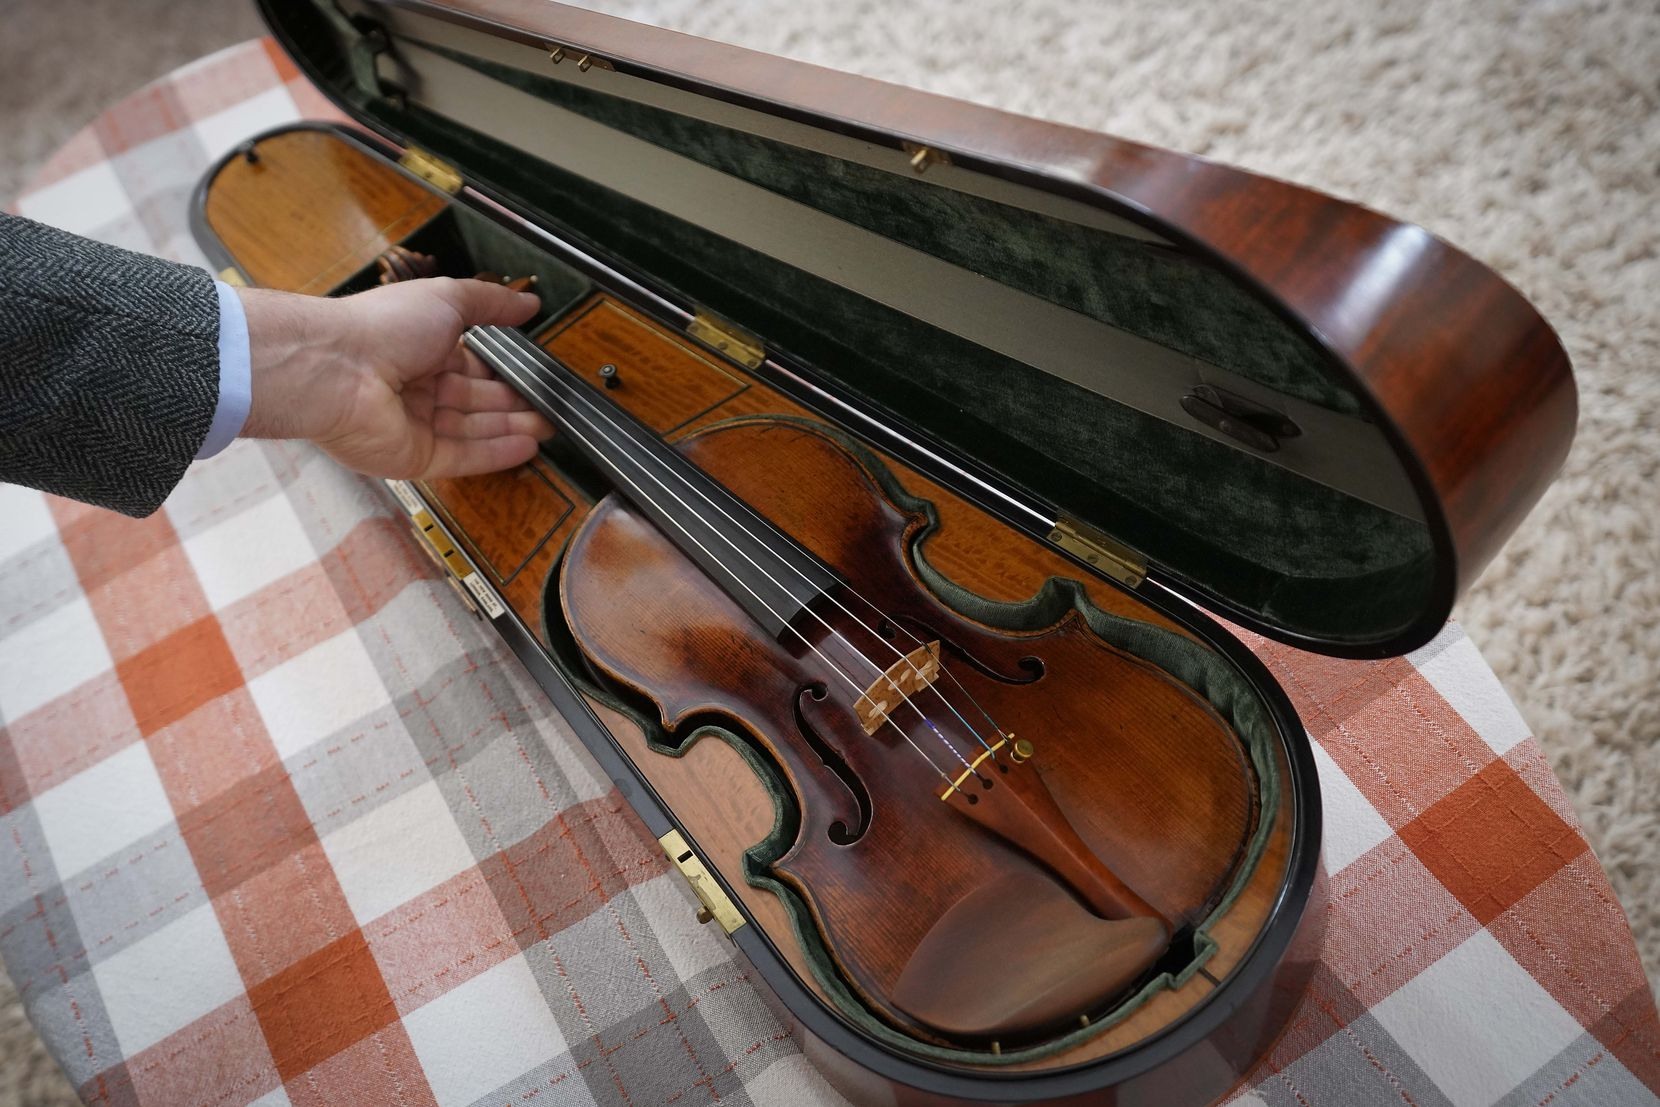 Aaron Boyd's violin sits in its case on Thursday. The instrument was made in Venice in 1690 by Matteo Goffriller, a renowned craftsman of string instruments.